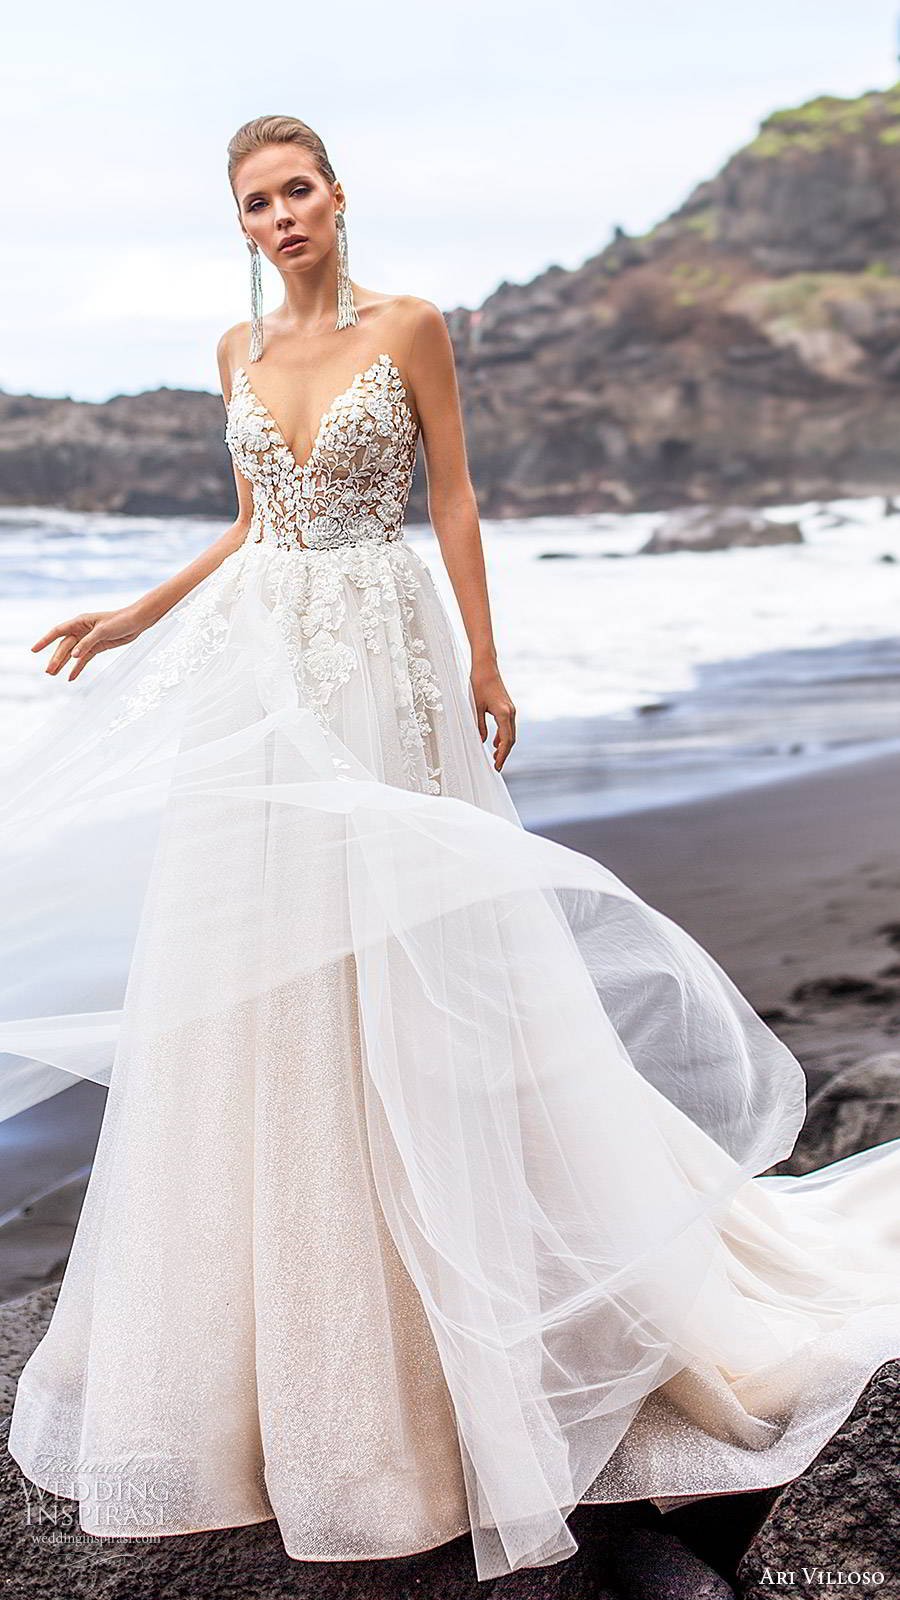 ari villoso 2020 bridal sleeveless illusion straps sweetheart sheer embellished bodice a line ball gown wedding dress (4) romantic sheer back chapel train mv